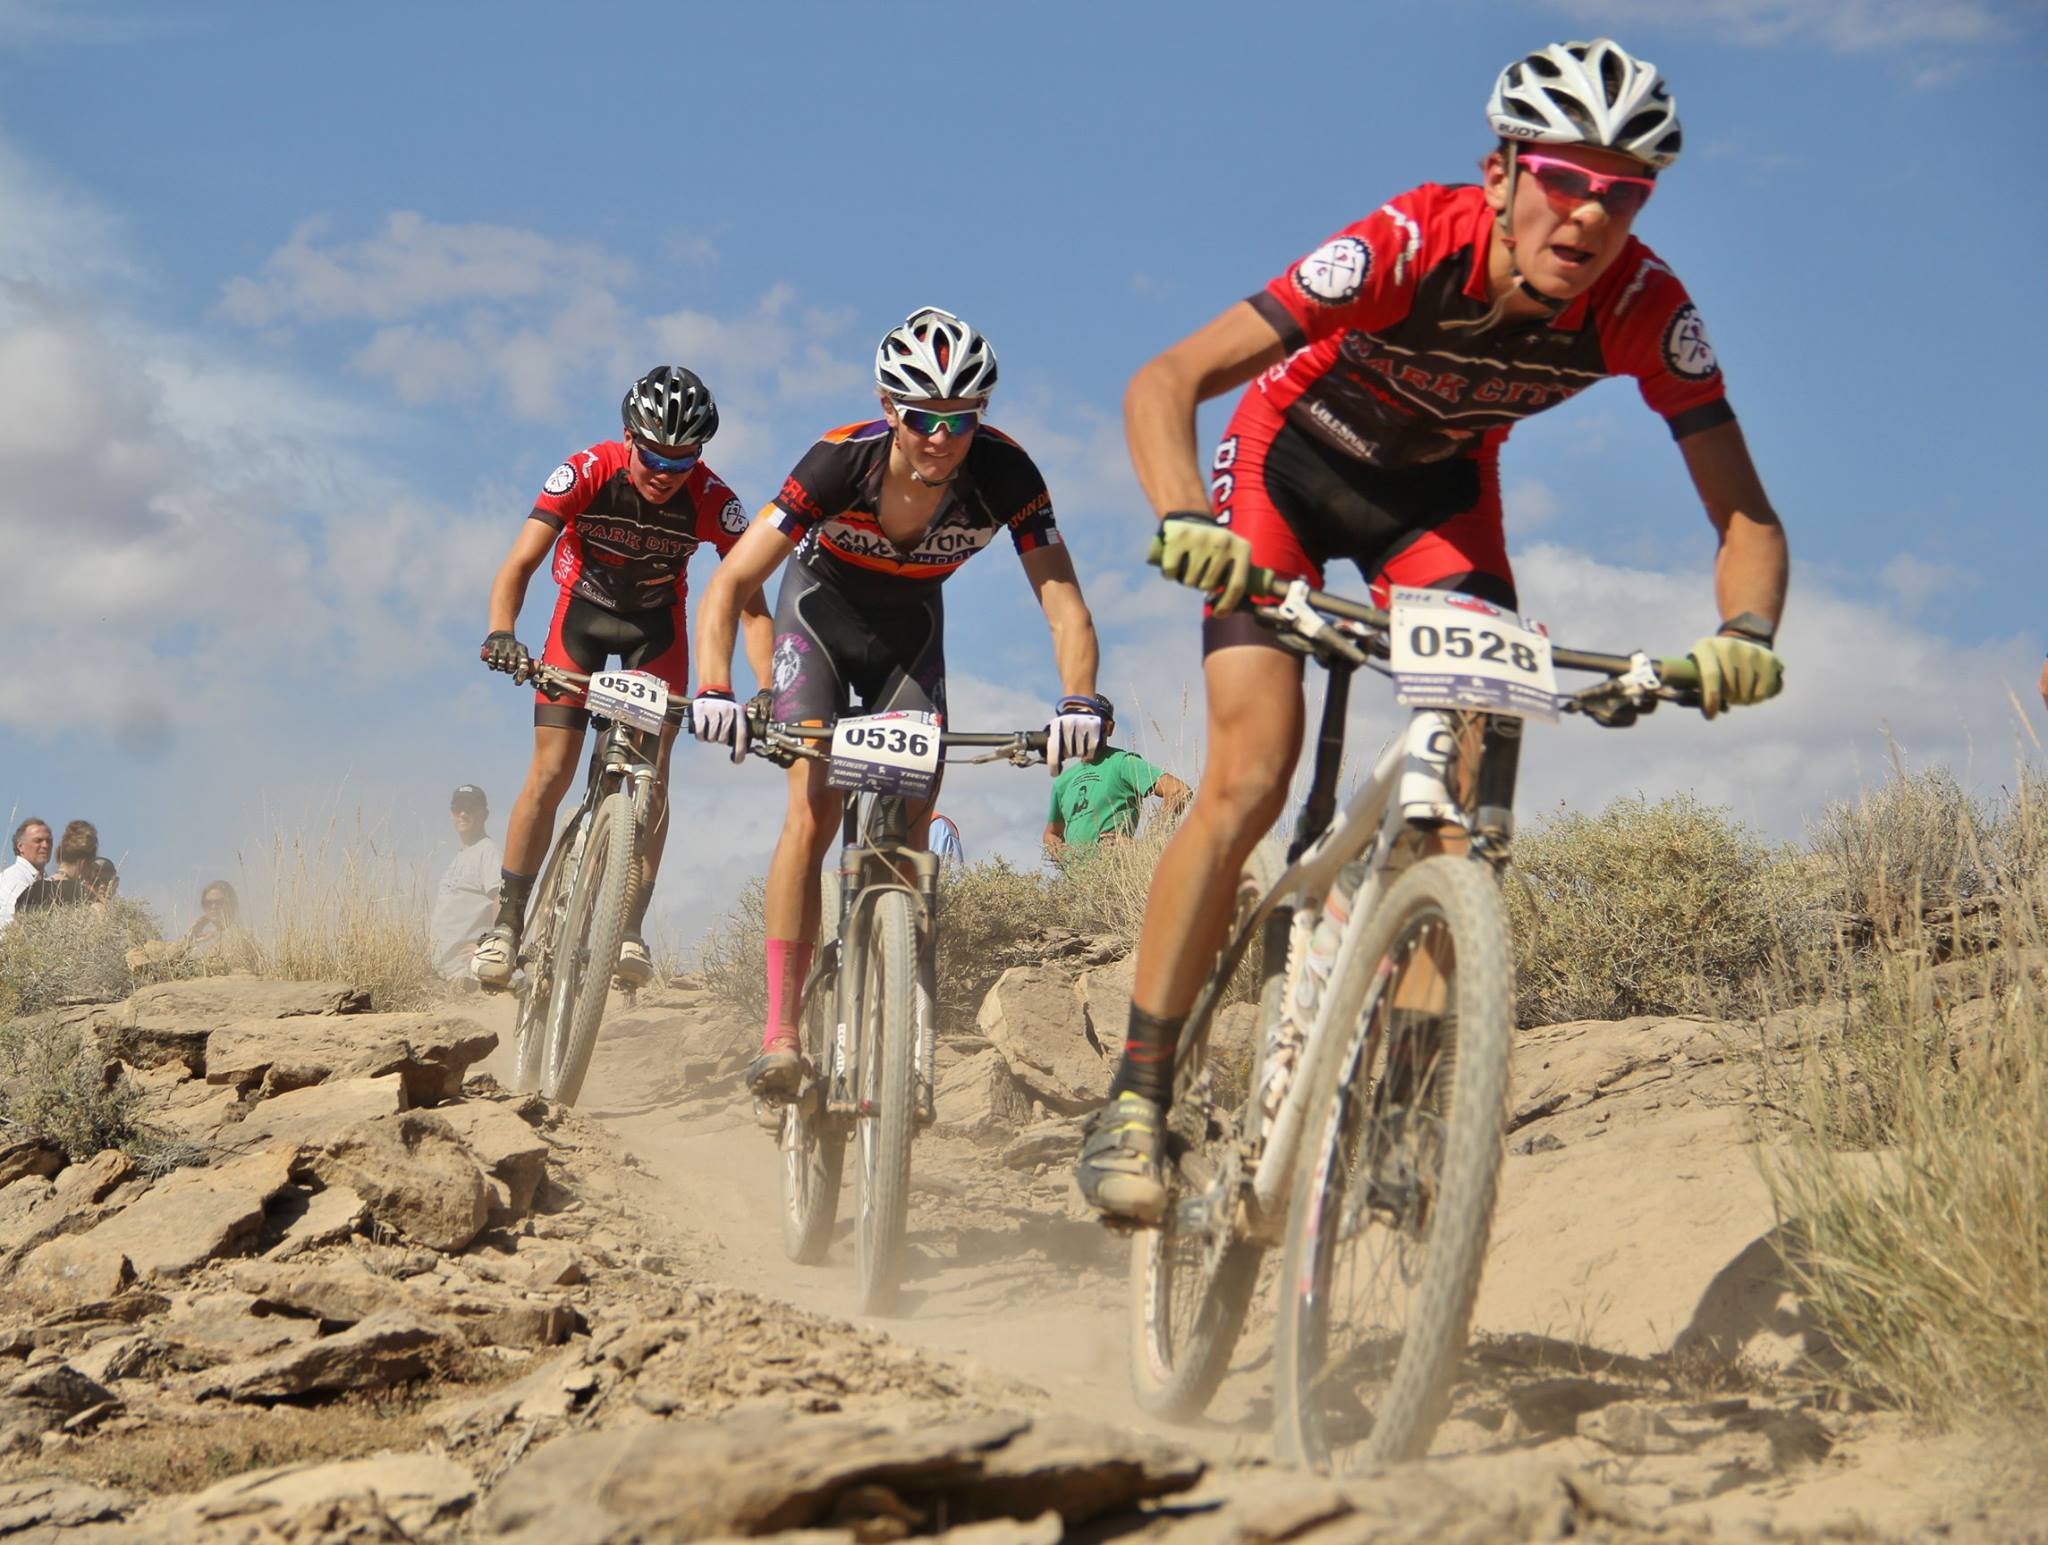 Varsity riders shredding trail